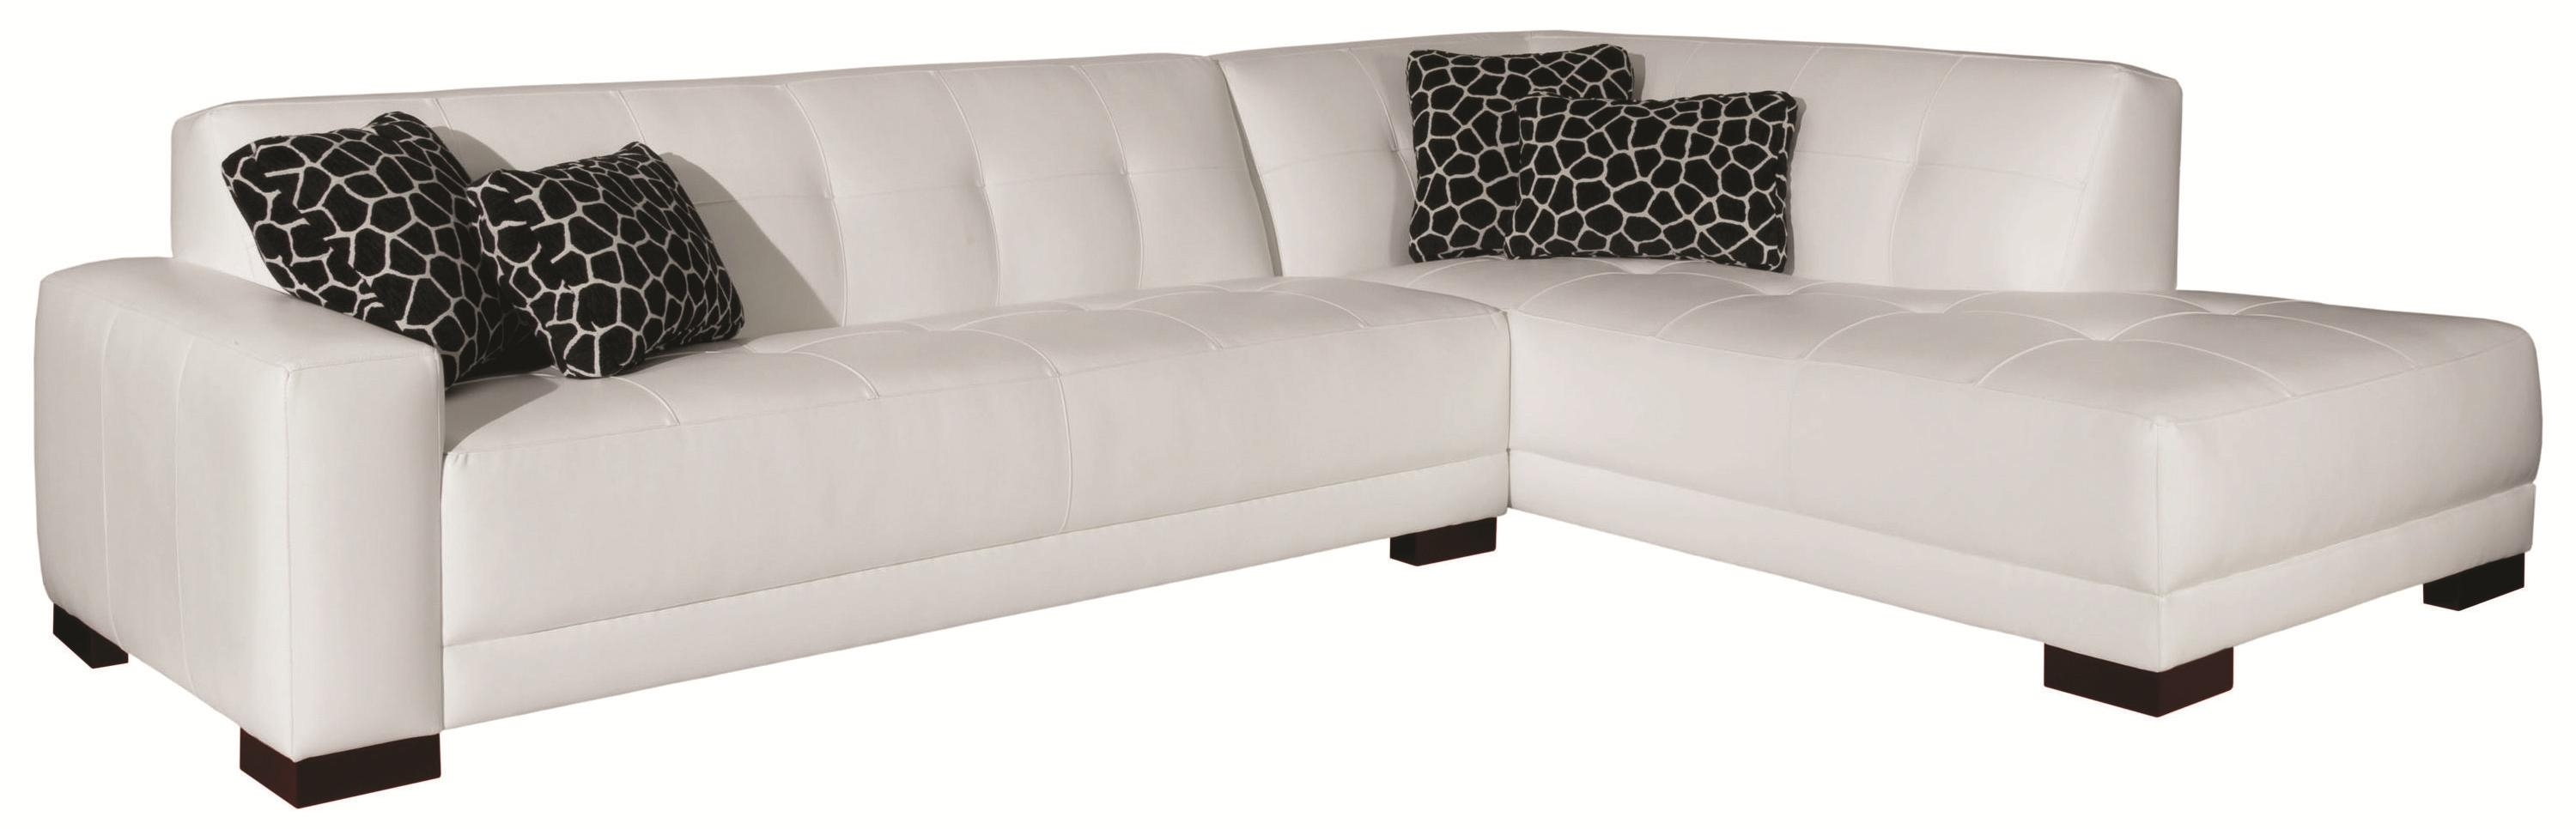 Broyhill Sectional Sofa | Aifaresidency for Sectional Sofas At Broyhill (Image 7 of 15)